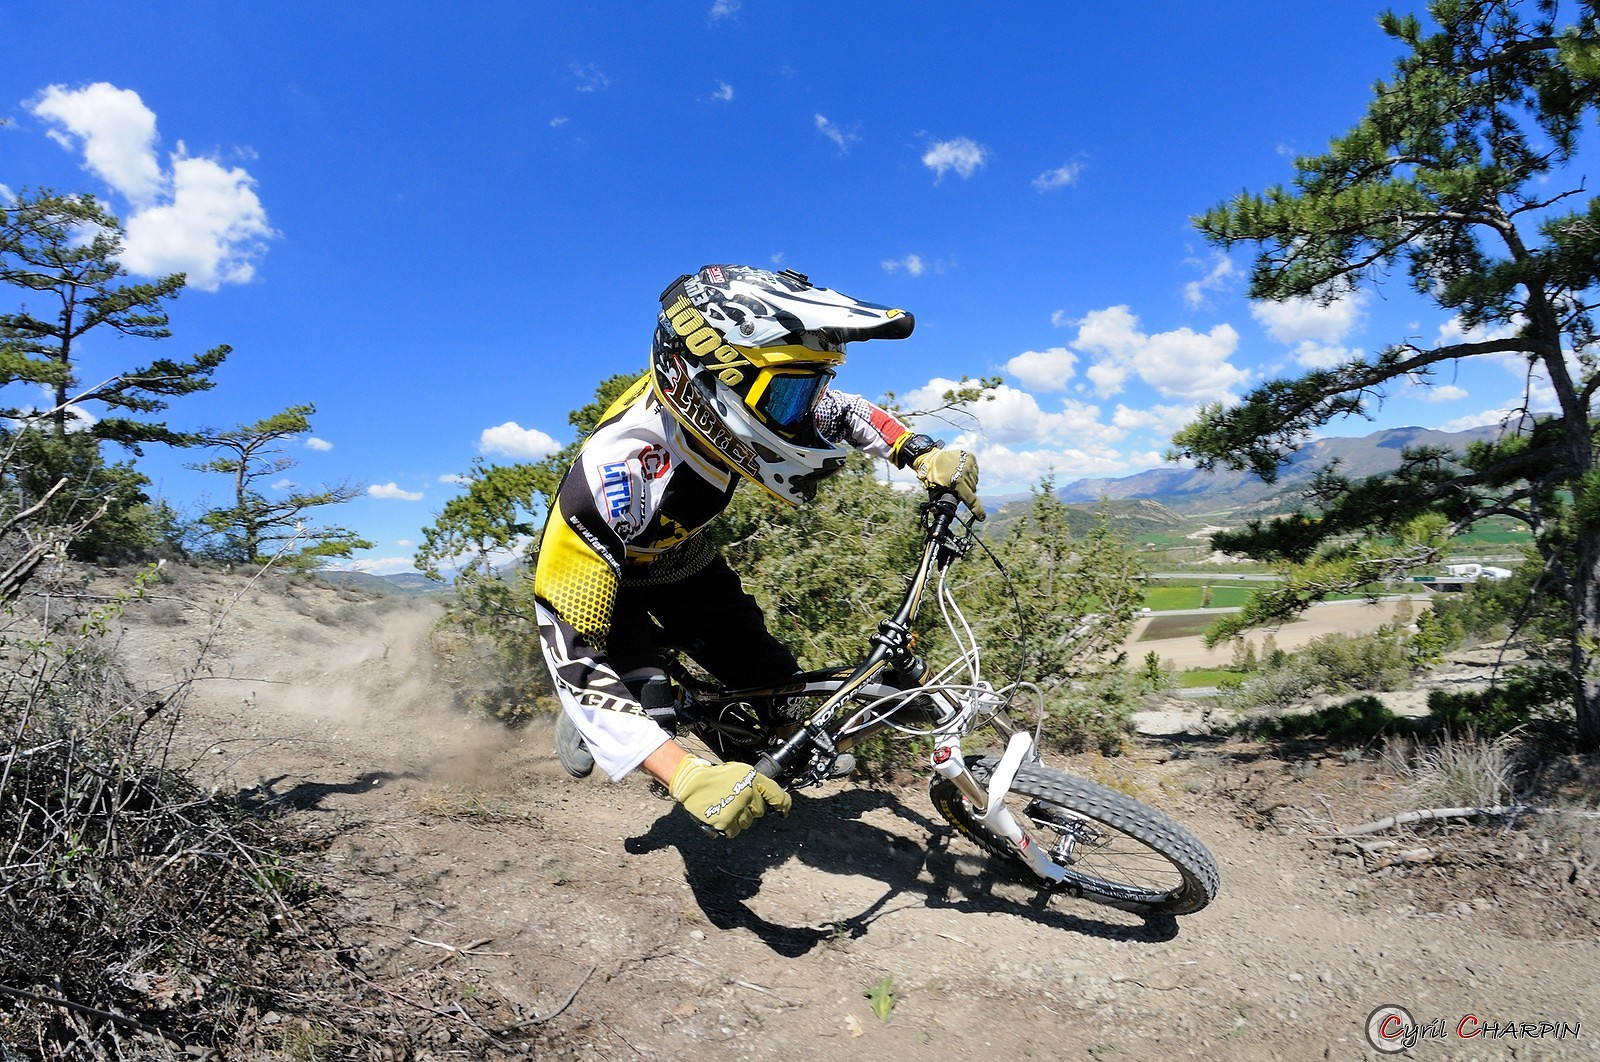 Curve attack - Cyril Charpin - Mountain Biking Pictures - Vital MTB